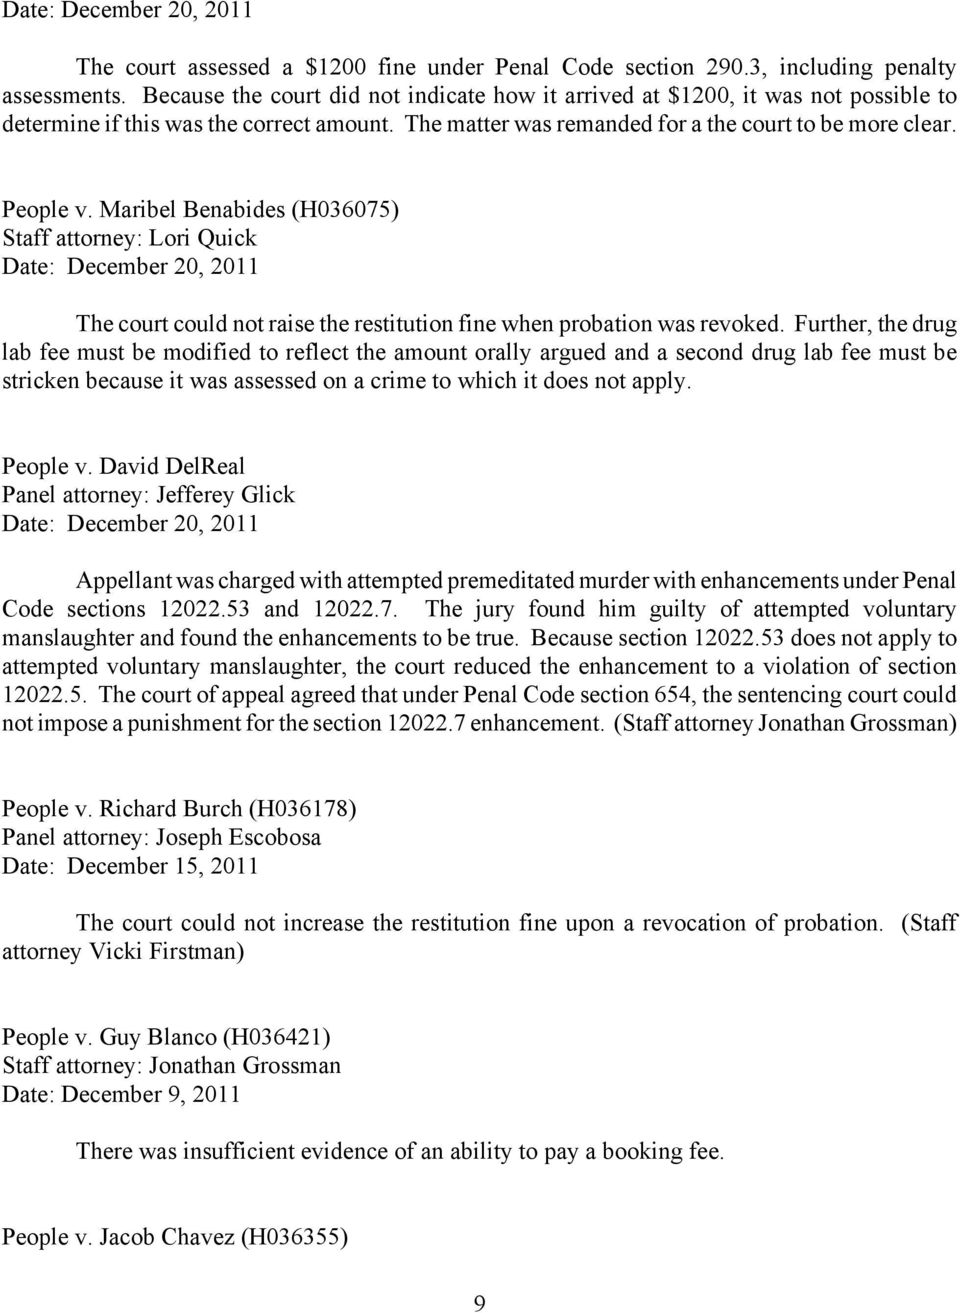 Maribel Benabides (H036075) Staff attorney: Lori Quick Date: December 20, 2011 The court could not raise the restitution fine when probation was revoked.